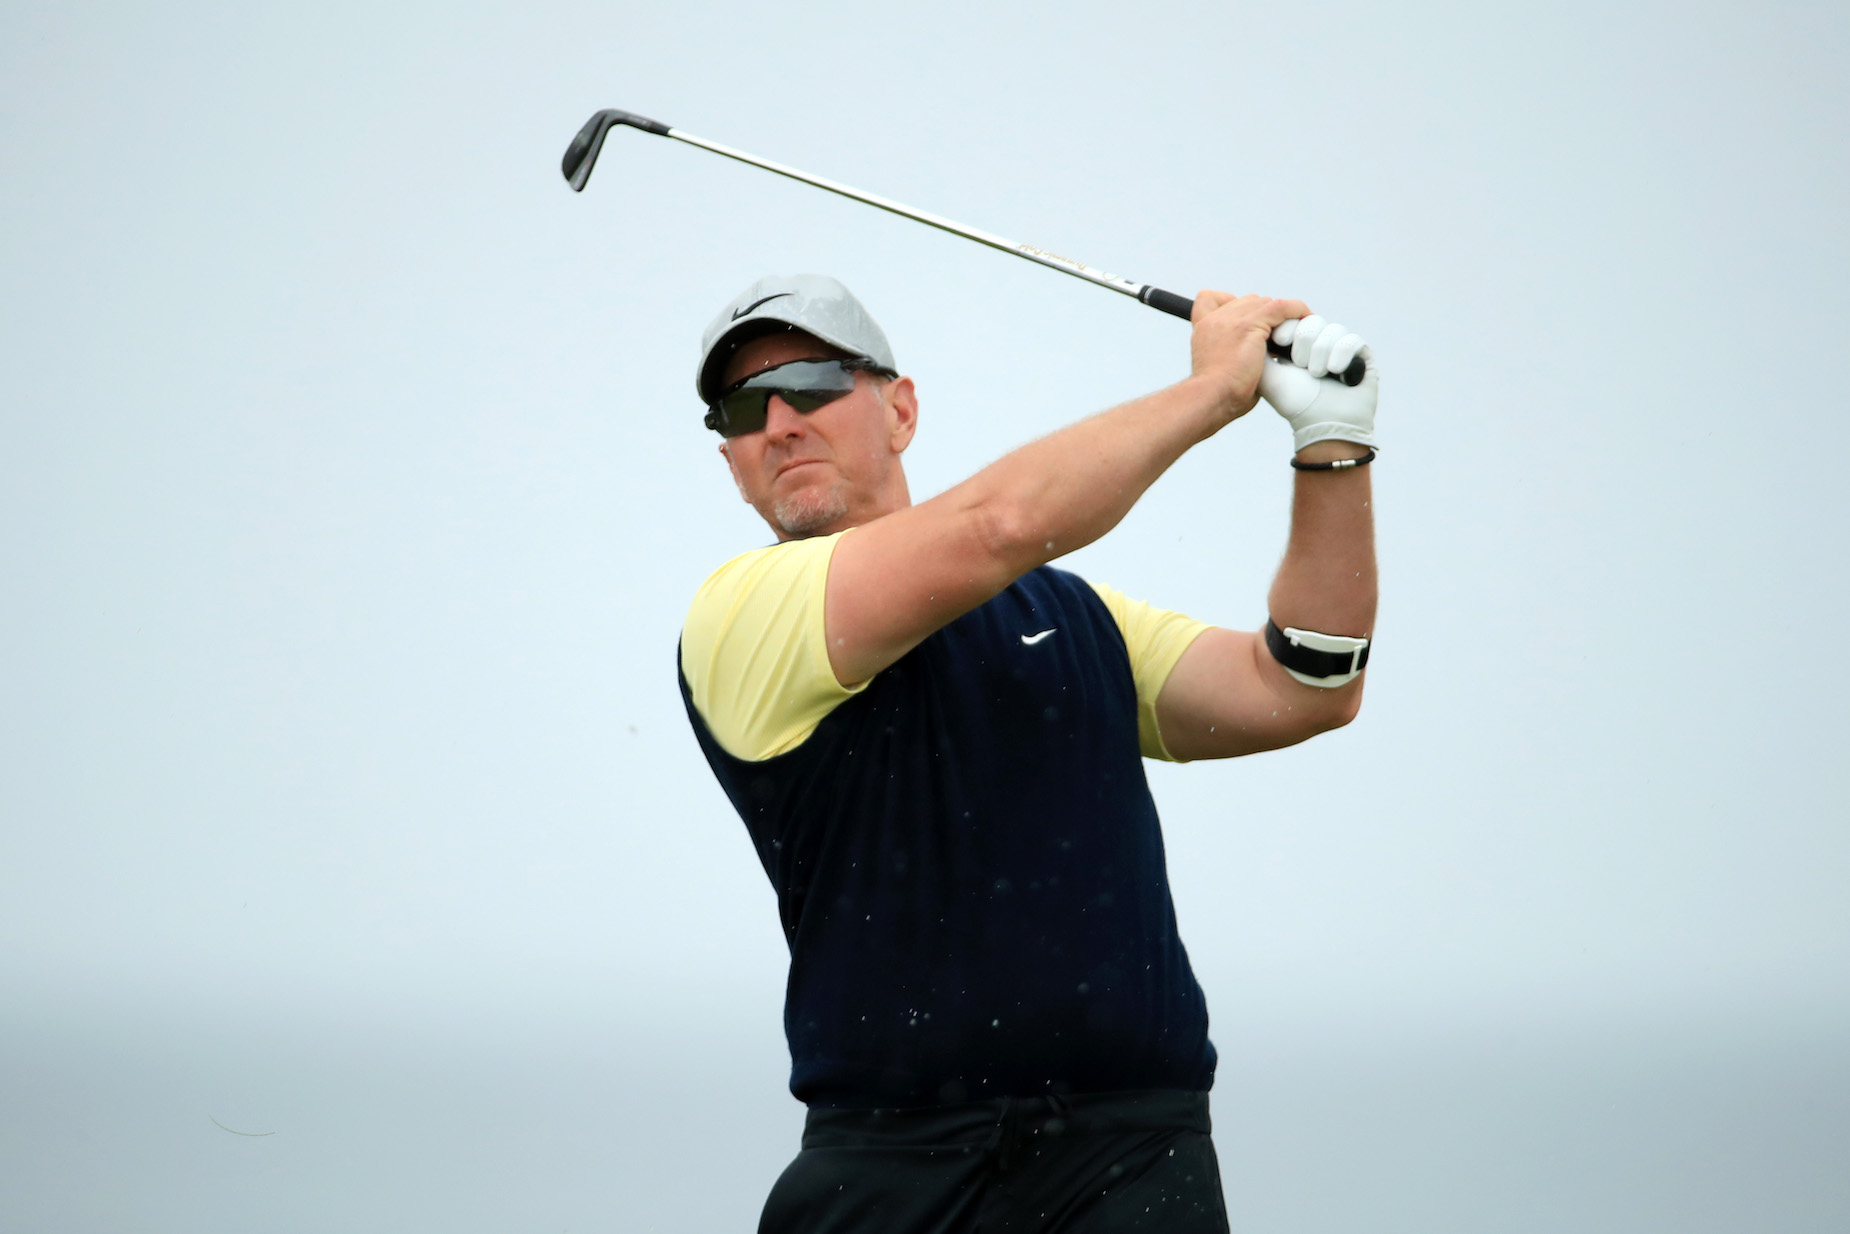 David Duval made almost $19 million on the PGA Tour before becoming a commentator.